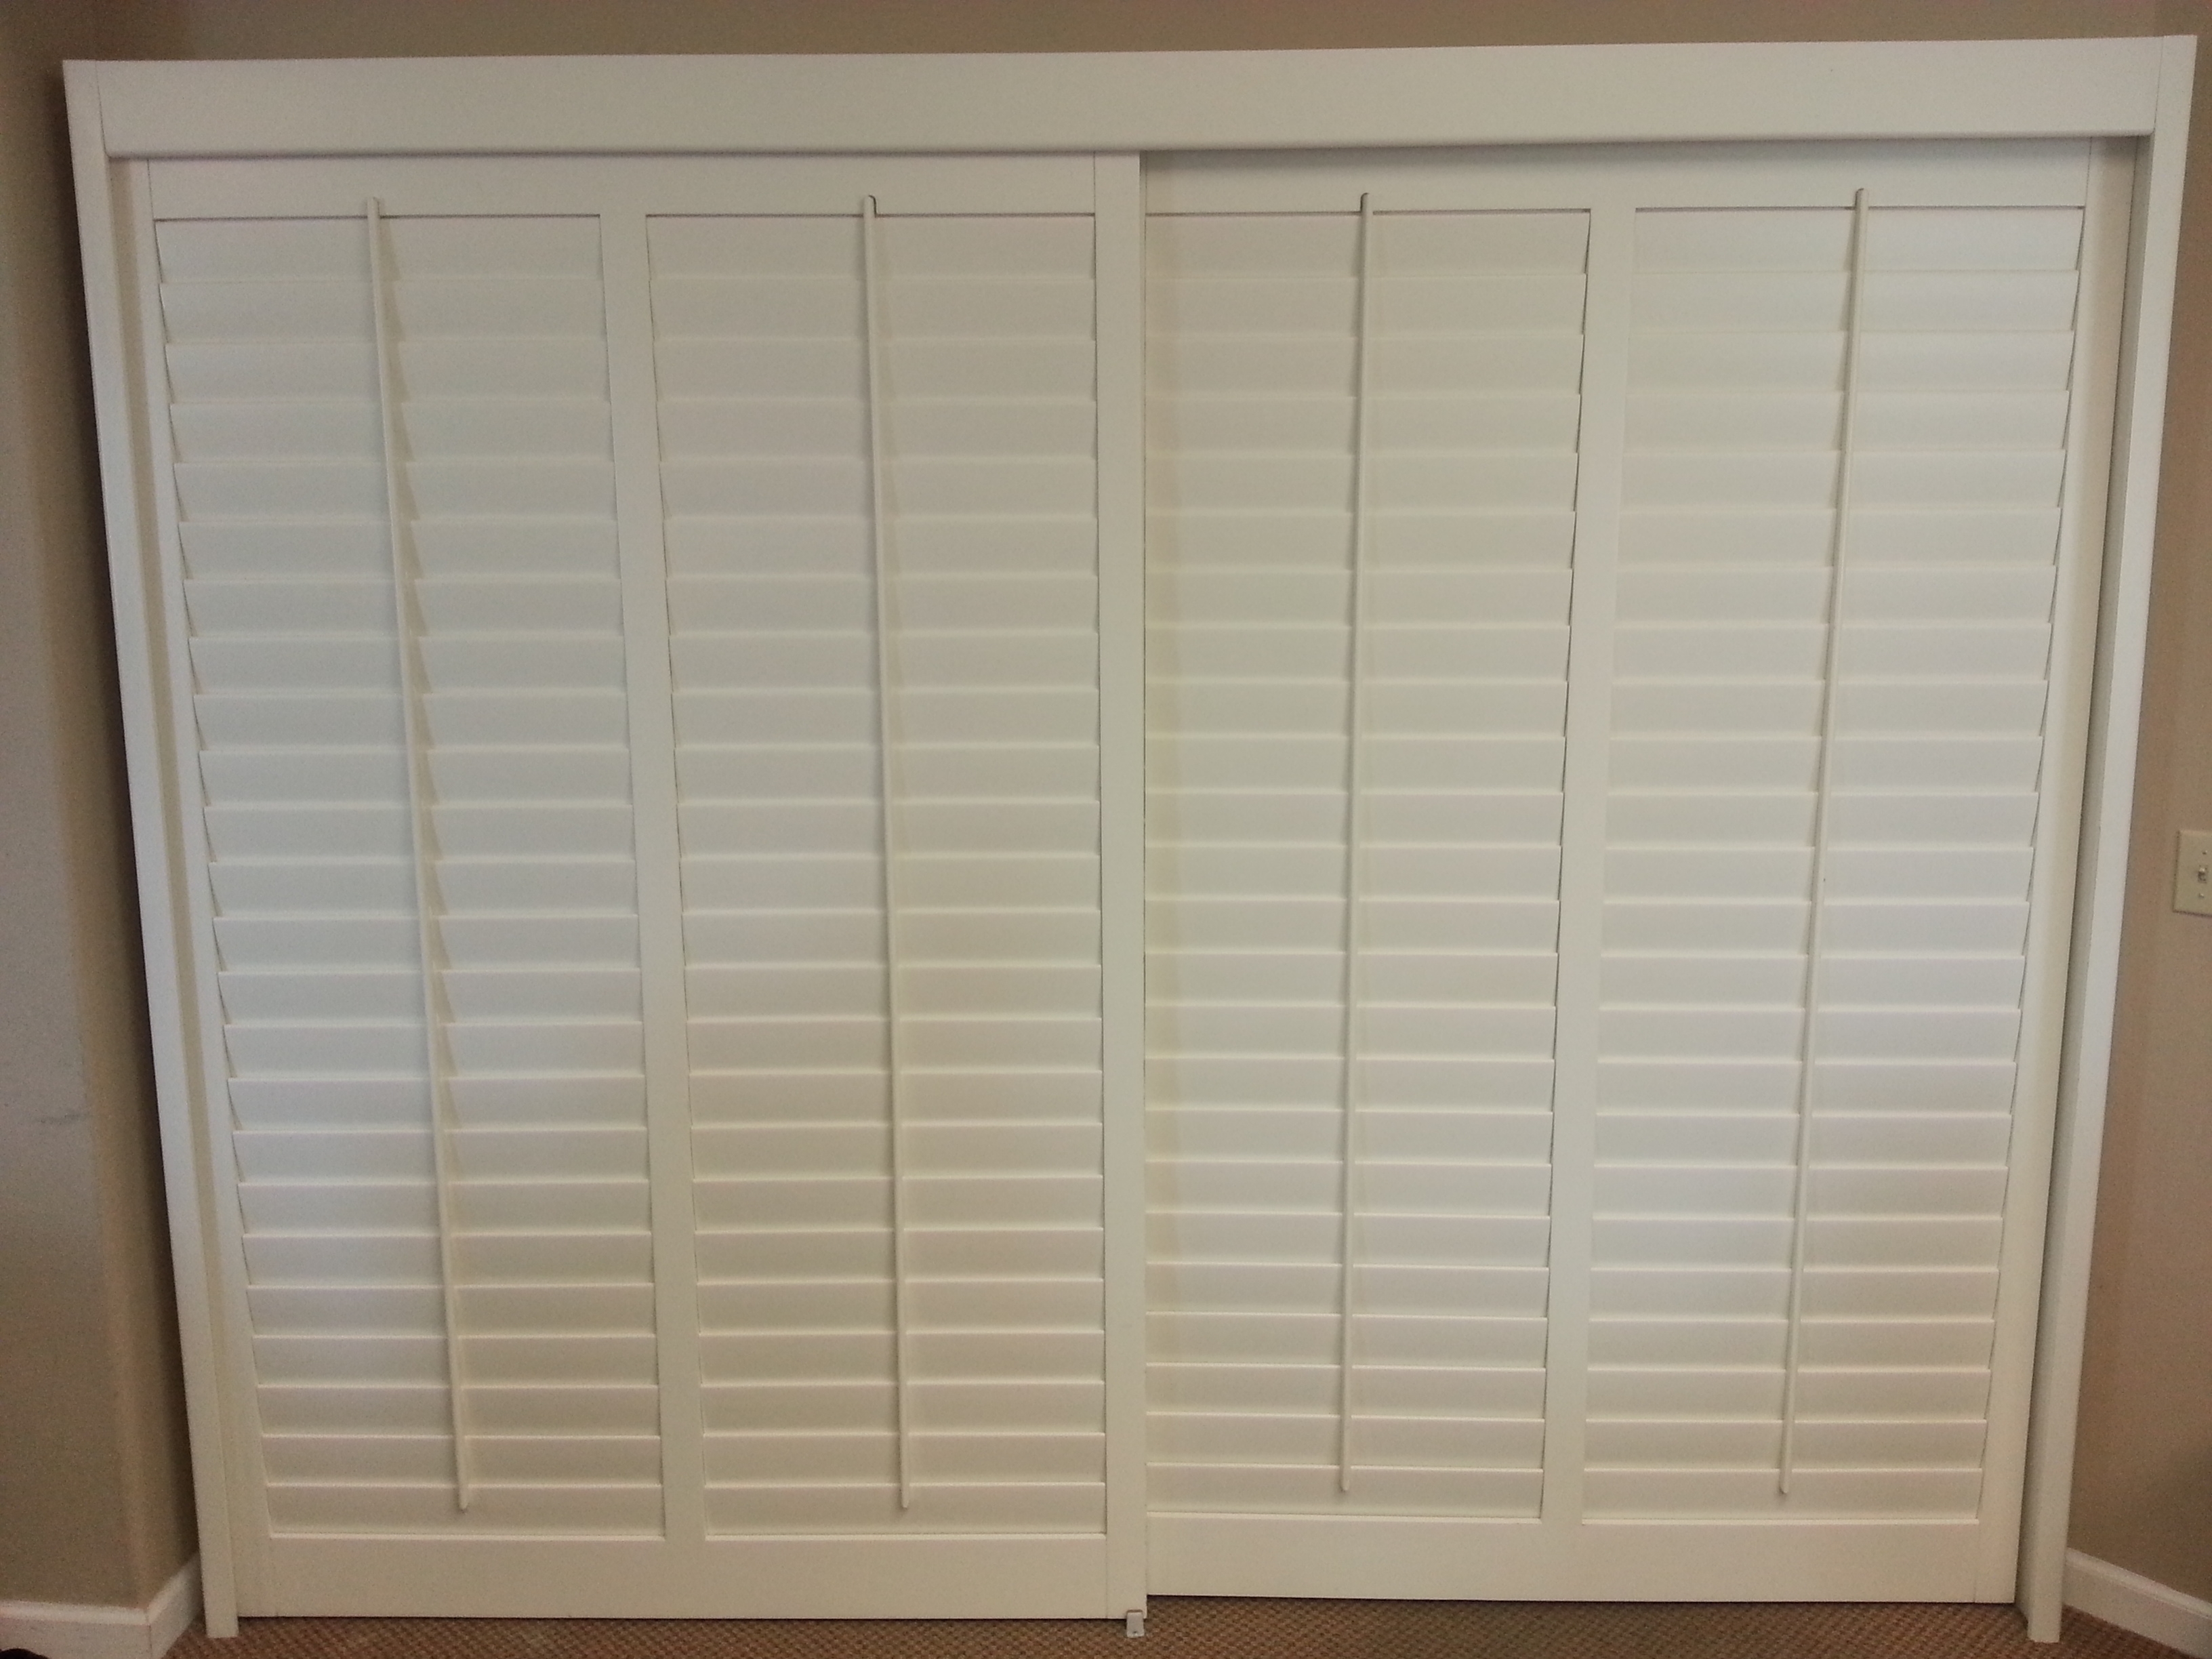 Faux Wood Shutters For Sliding Glass Doorsmeasuring plantation shutters for sliding glass doors